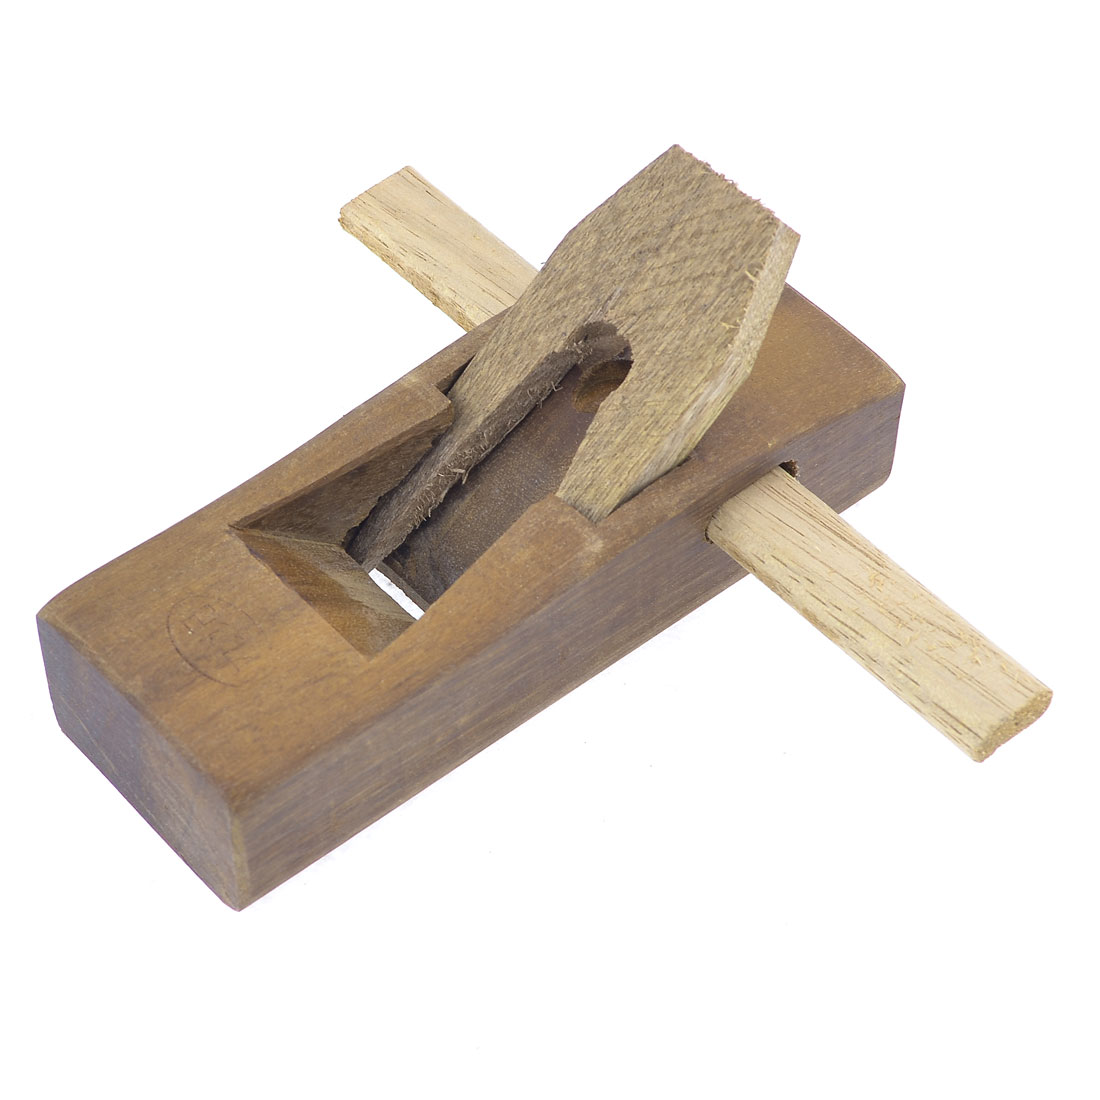 "Cabinetmaker Woodwork Manual Wood Planer Plane 6.5"" Length"